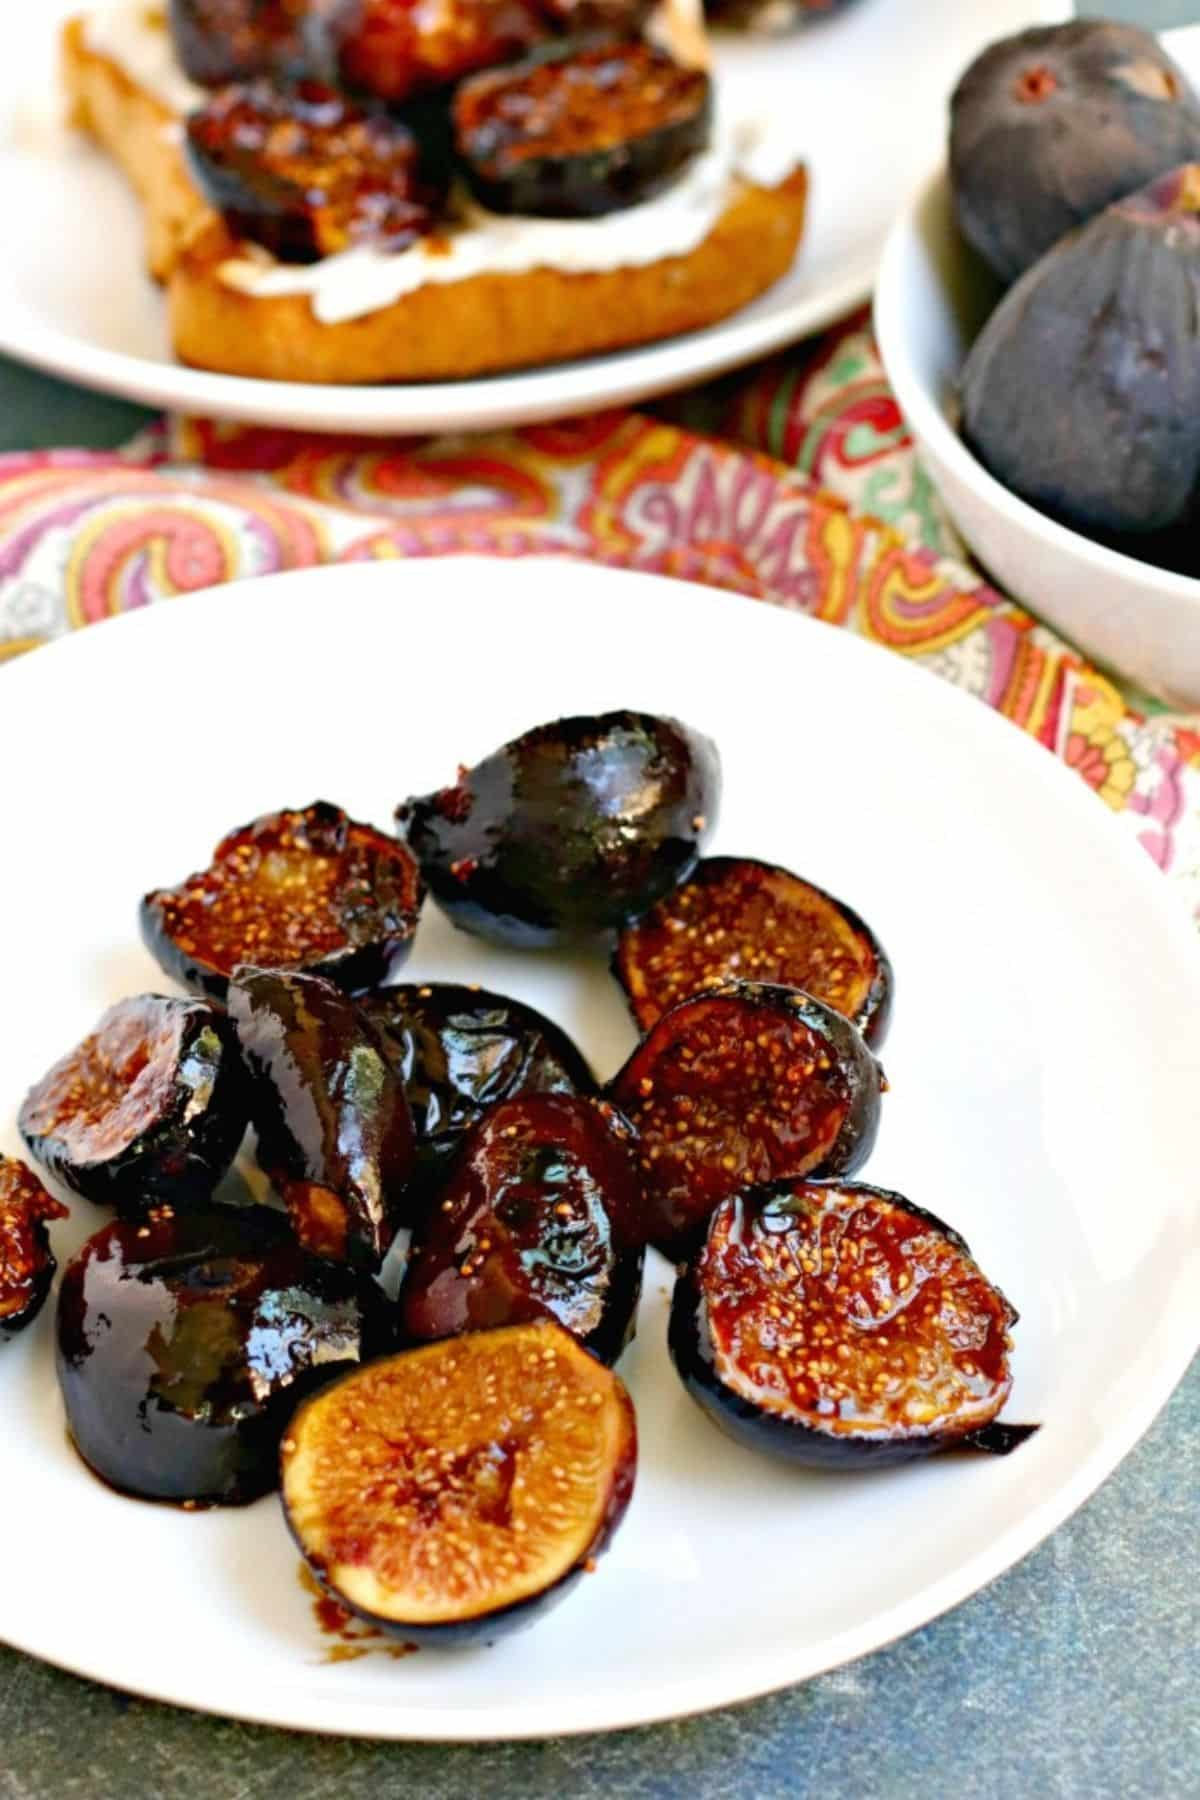 Caramelized figs on a plate with toast and bowl of fresh figs in the background